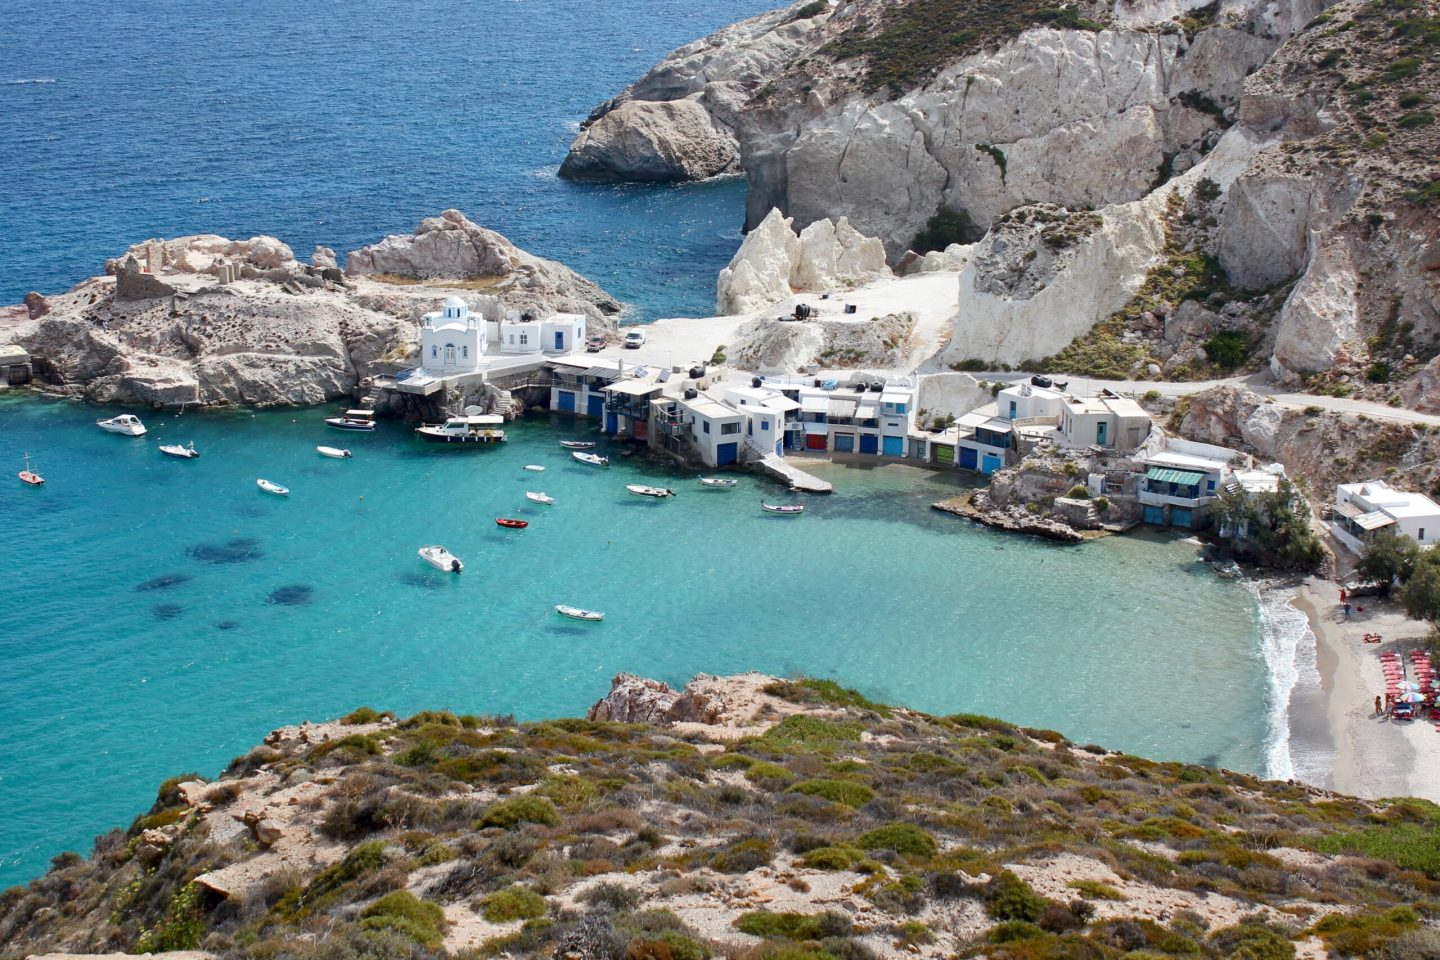 Water, houses and boats in Milos